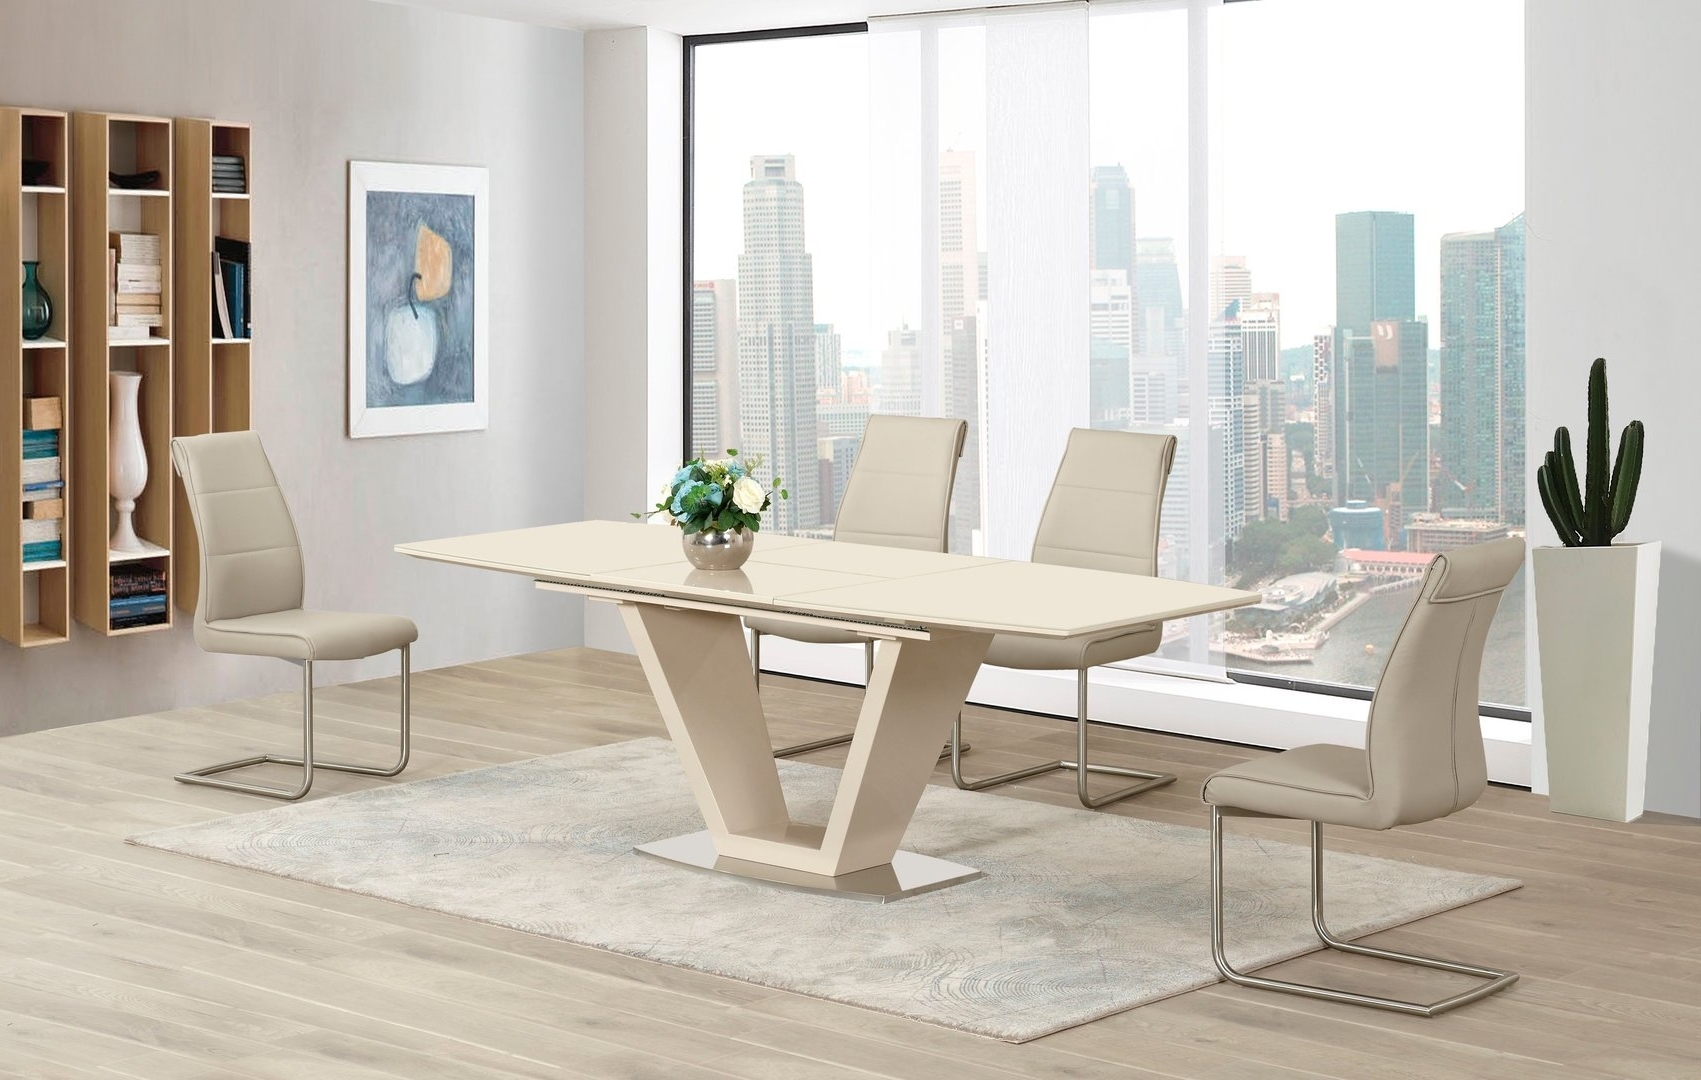 Extendable Glass Dining Tables And 6 Chairs Within Widely Used Cream Extending Glass High Gloss Dining Table And 6 Taupe Chairs (View 11 of 25)